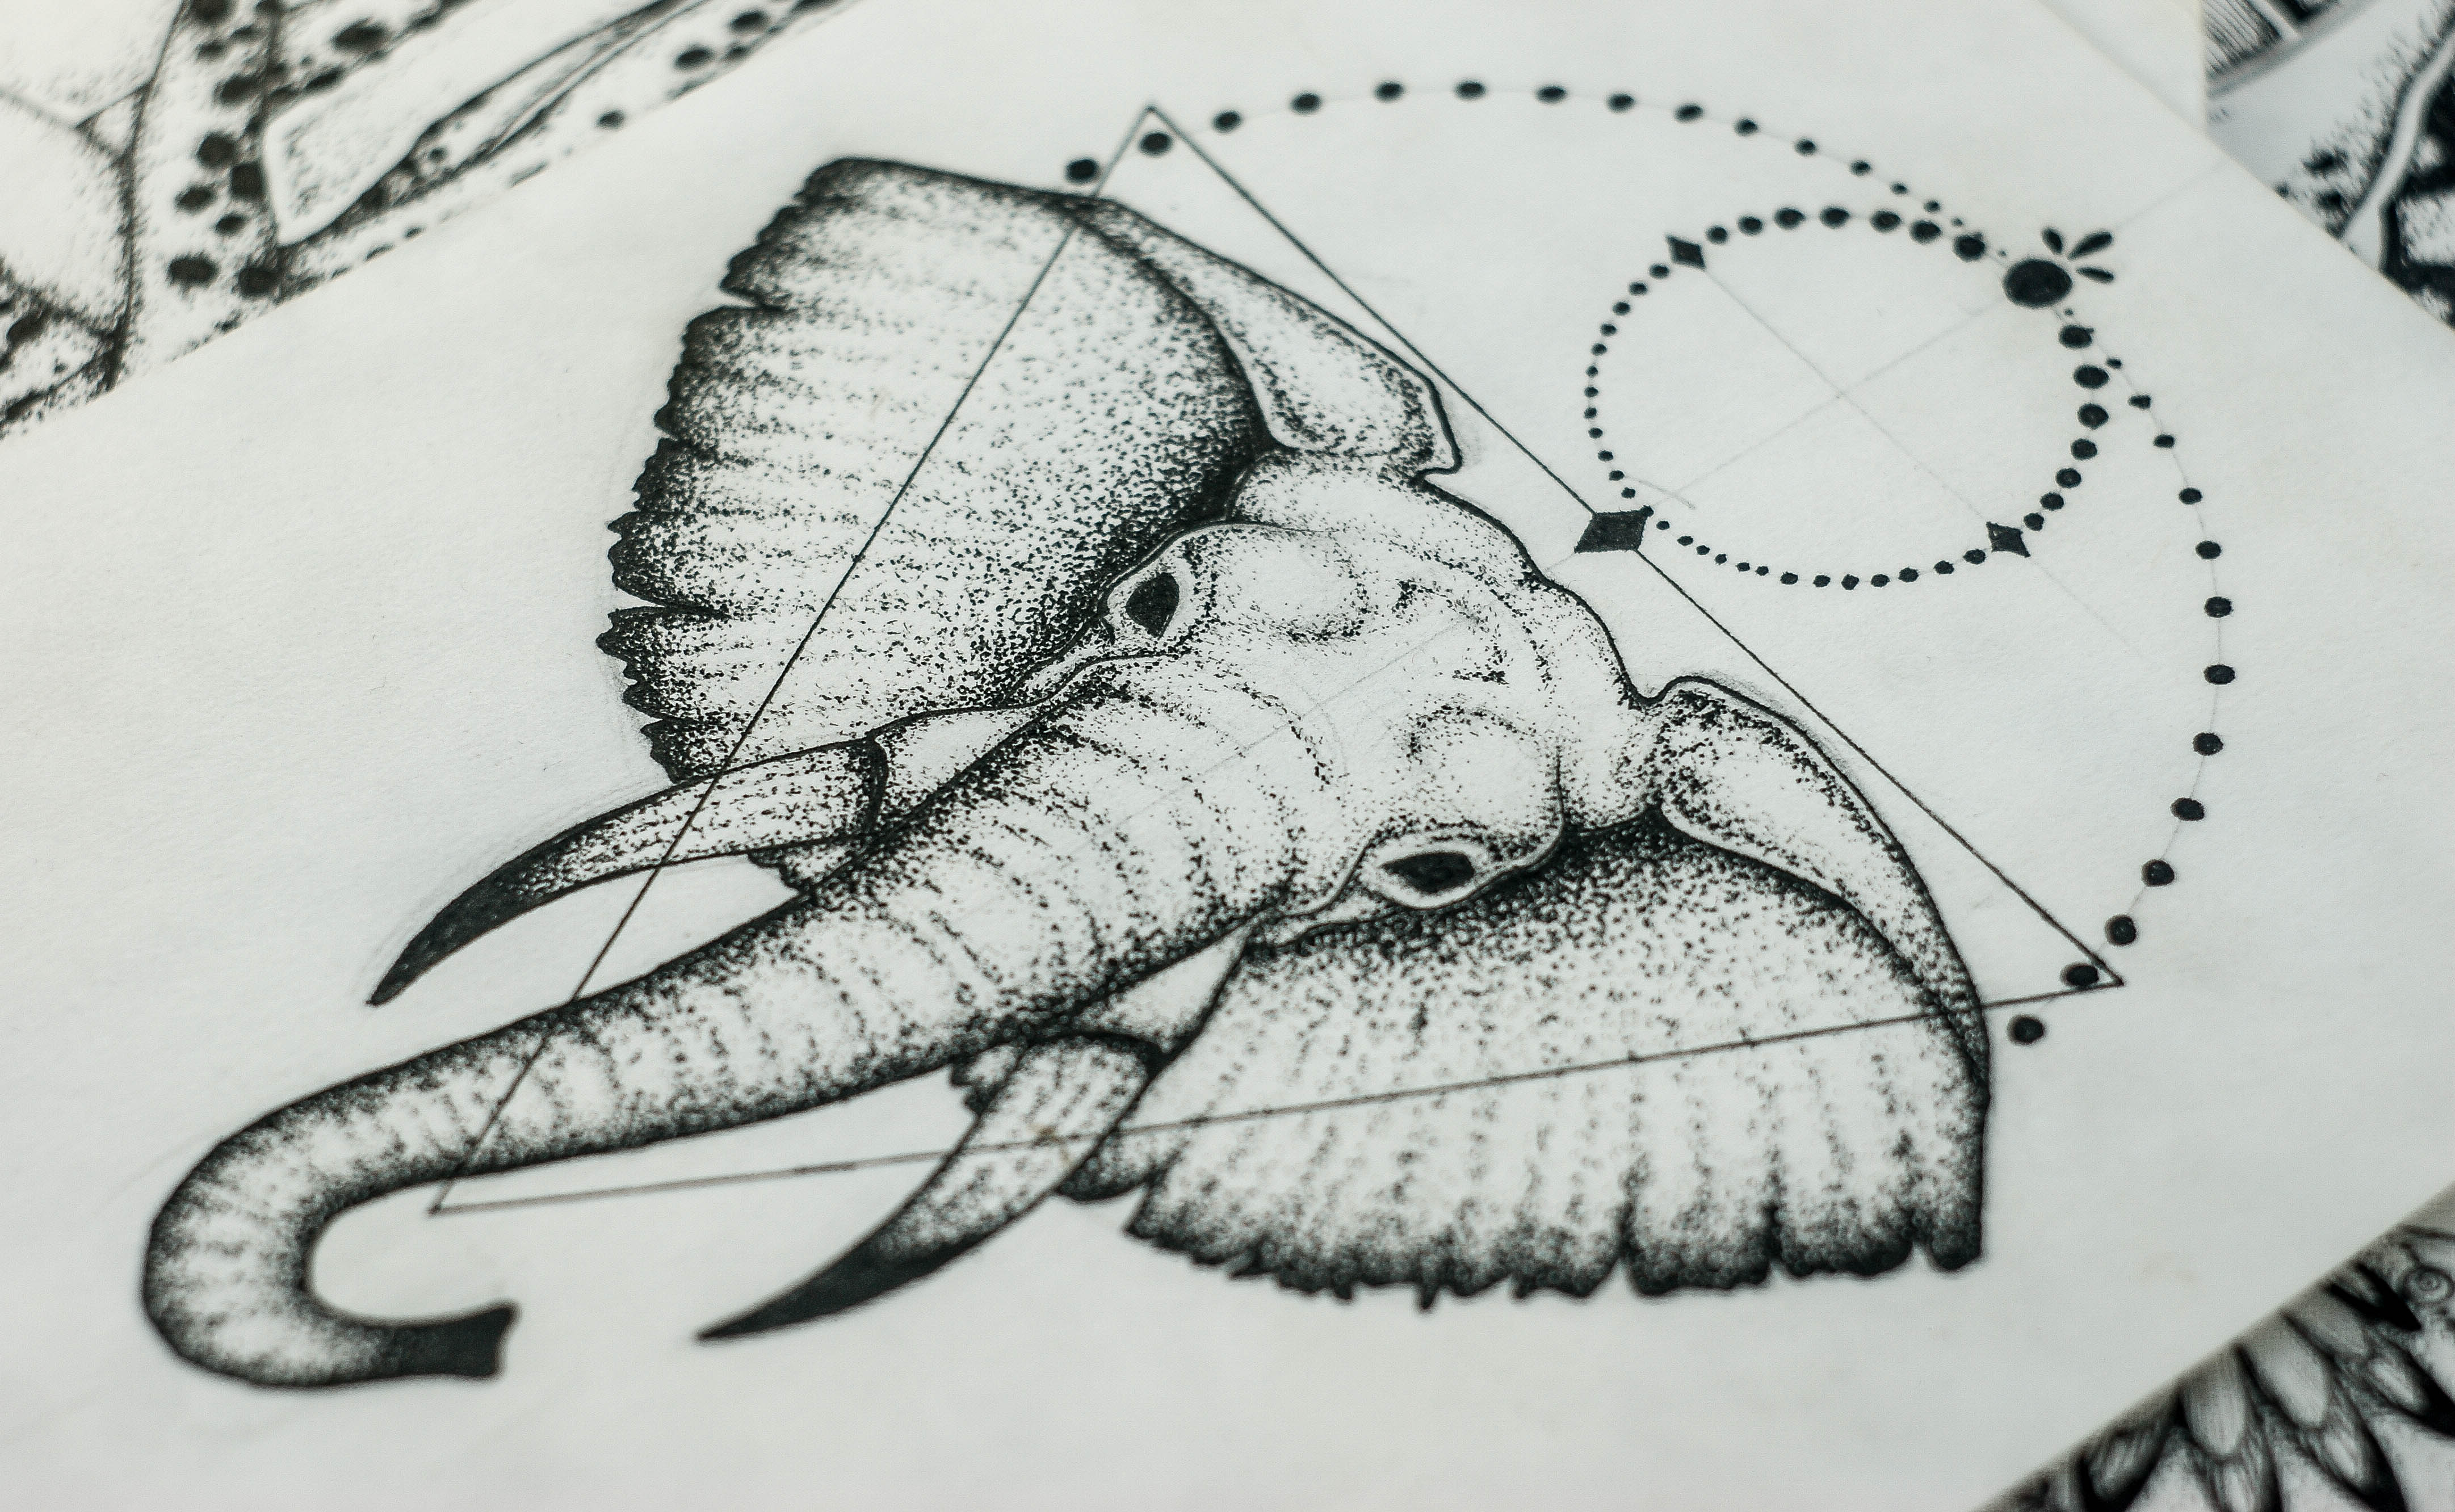 Dotwork black-eyed elephant with geometric drawings tattoo design by Askaraya